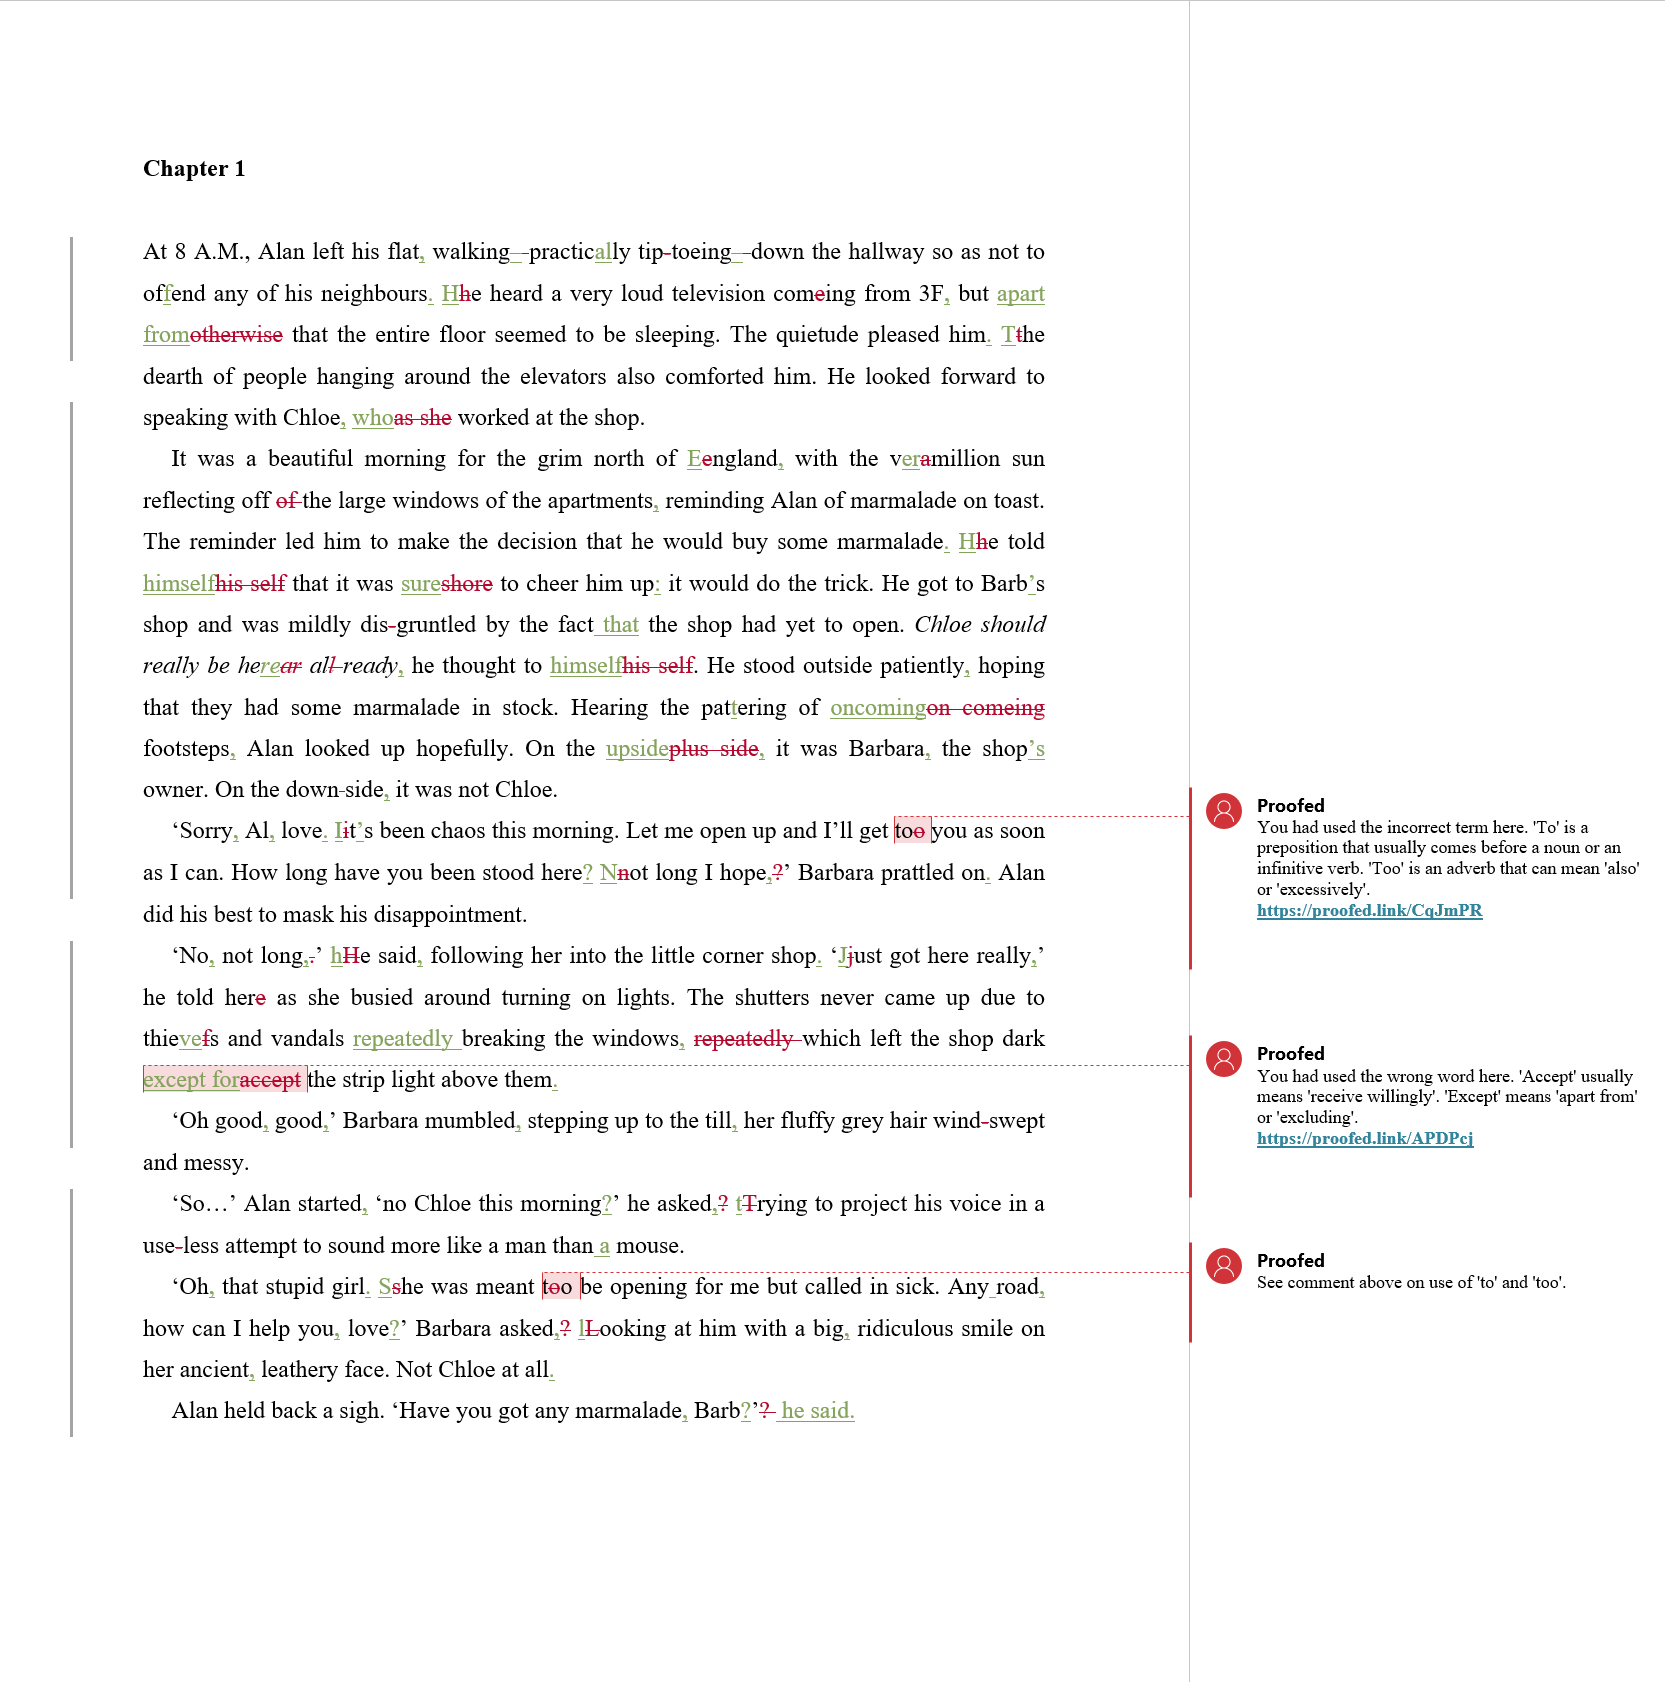 MS Word Proofreading Example (After Editing)